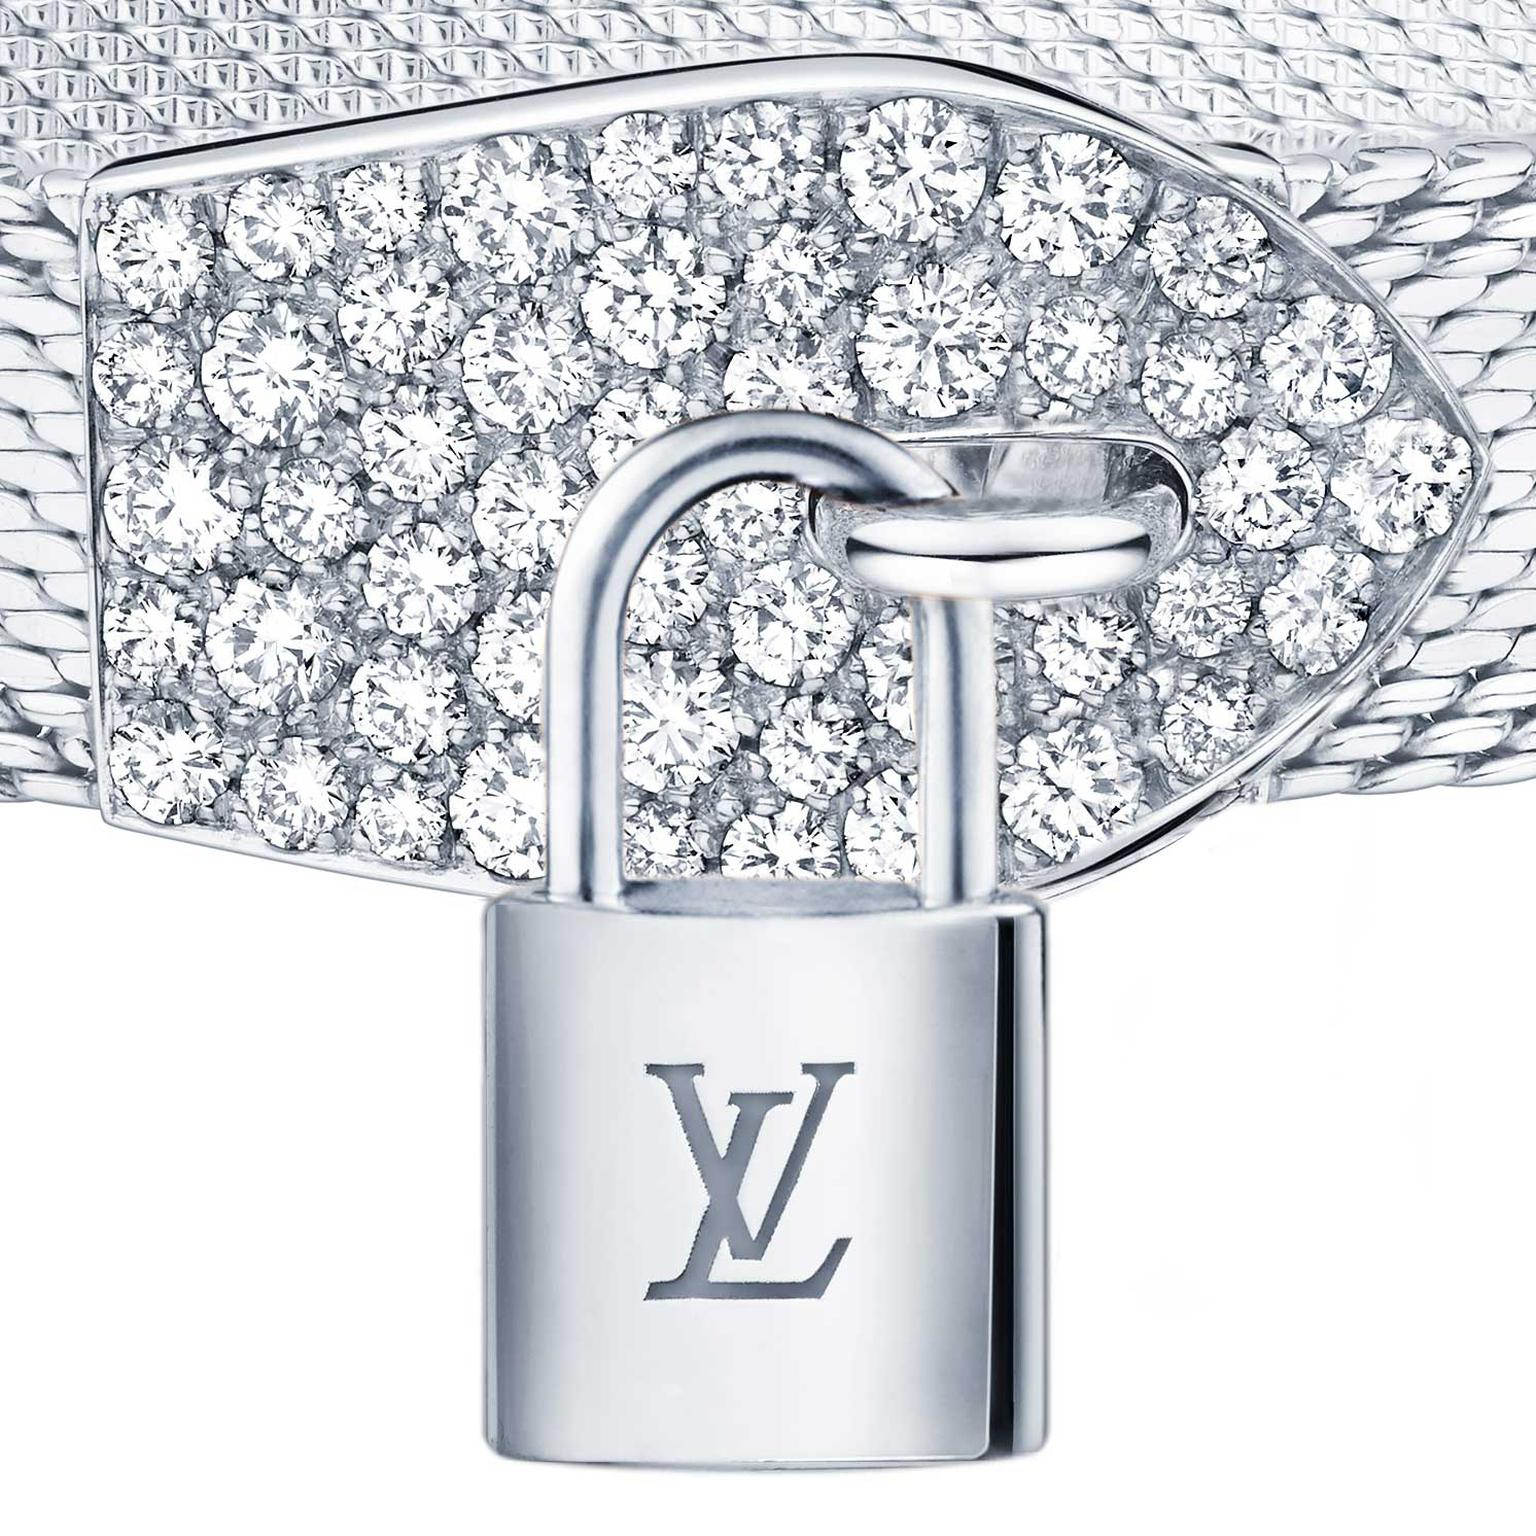 Louis Vuitton Lockit bracelet lock